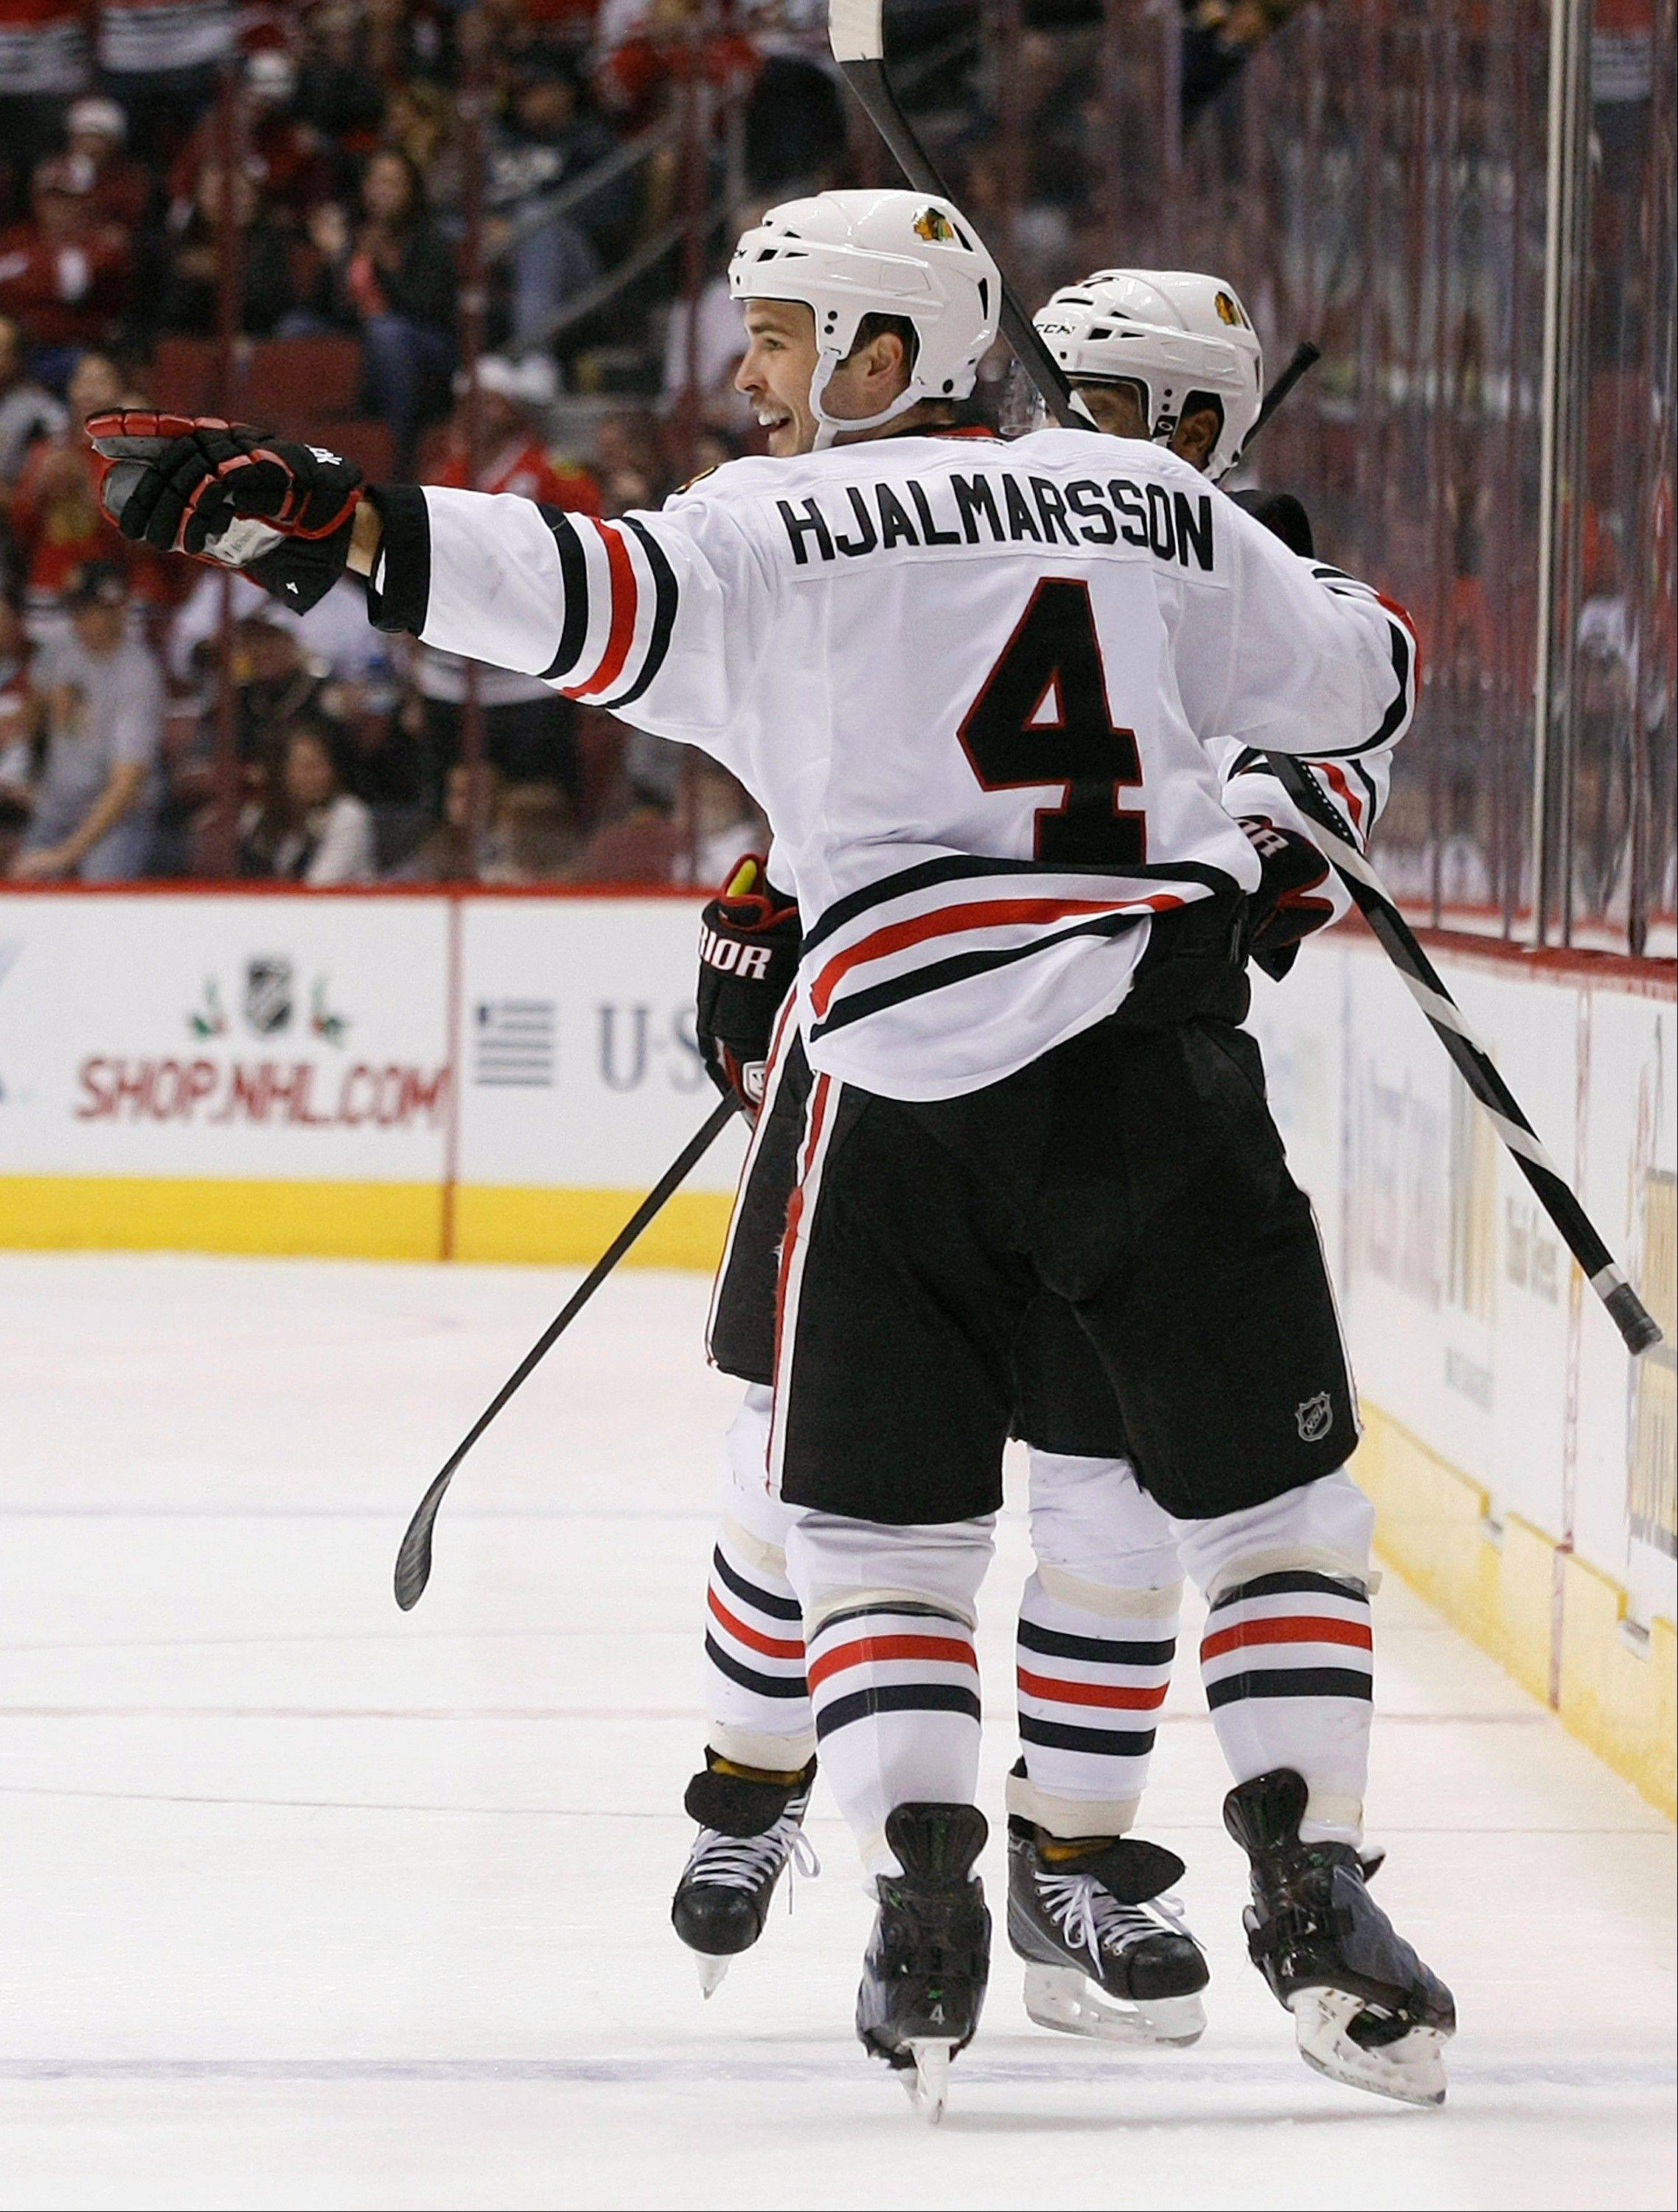 Niklas Hjalmarsson celebrates after scoring a first-period goal in the Blackhawks' 5-2 victory Saturday to close their 6-1 road trip.